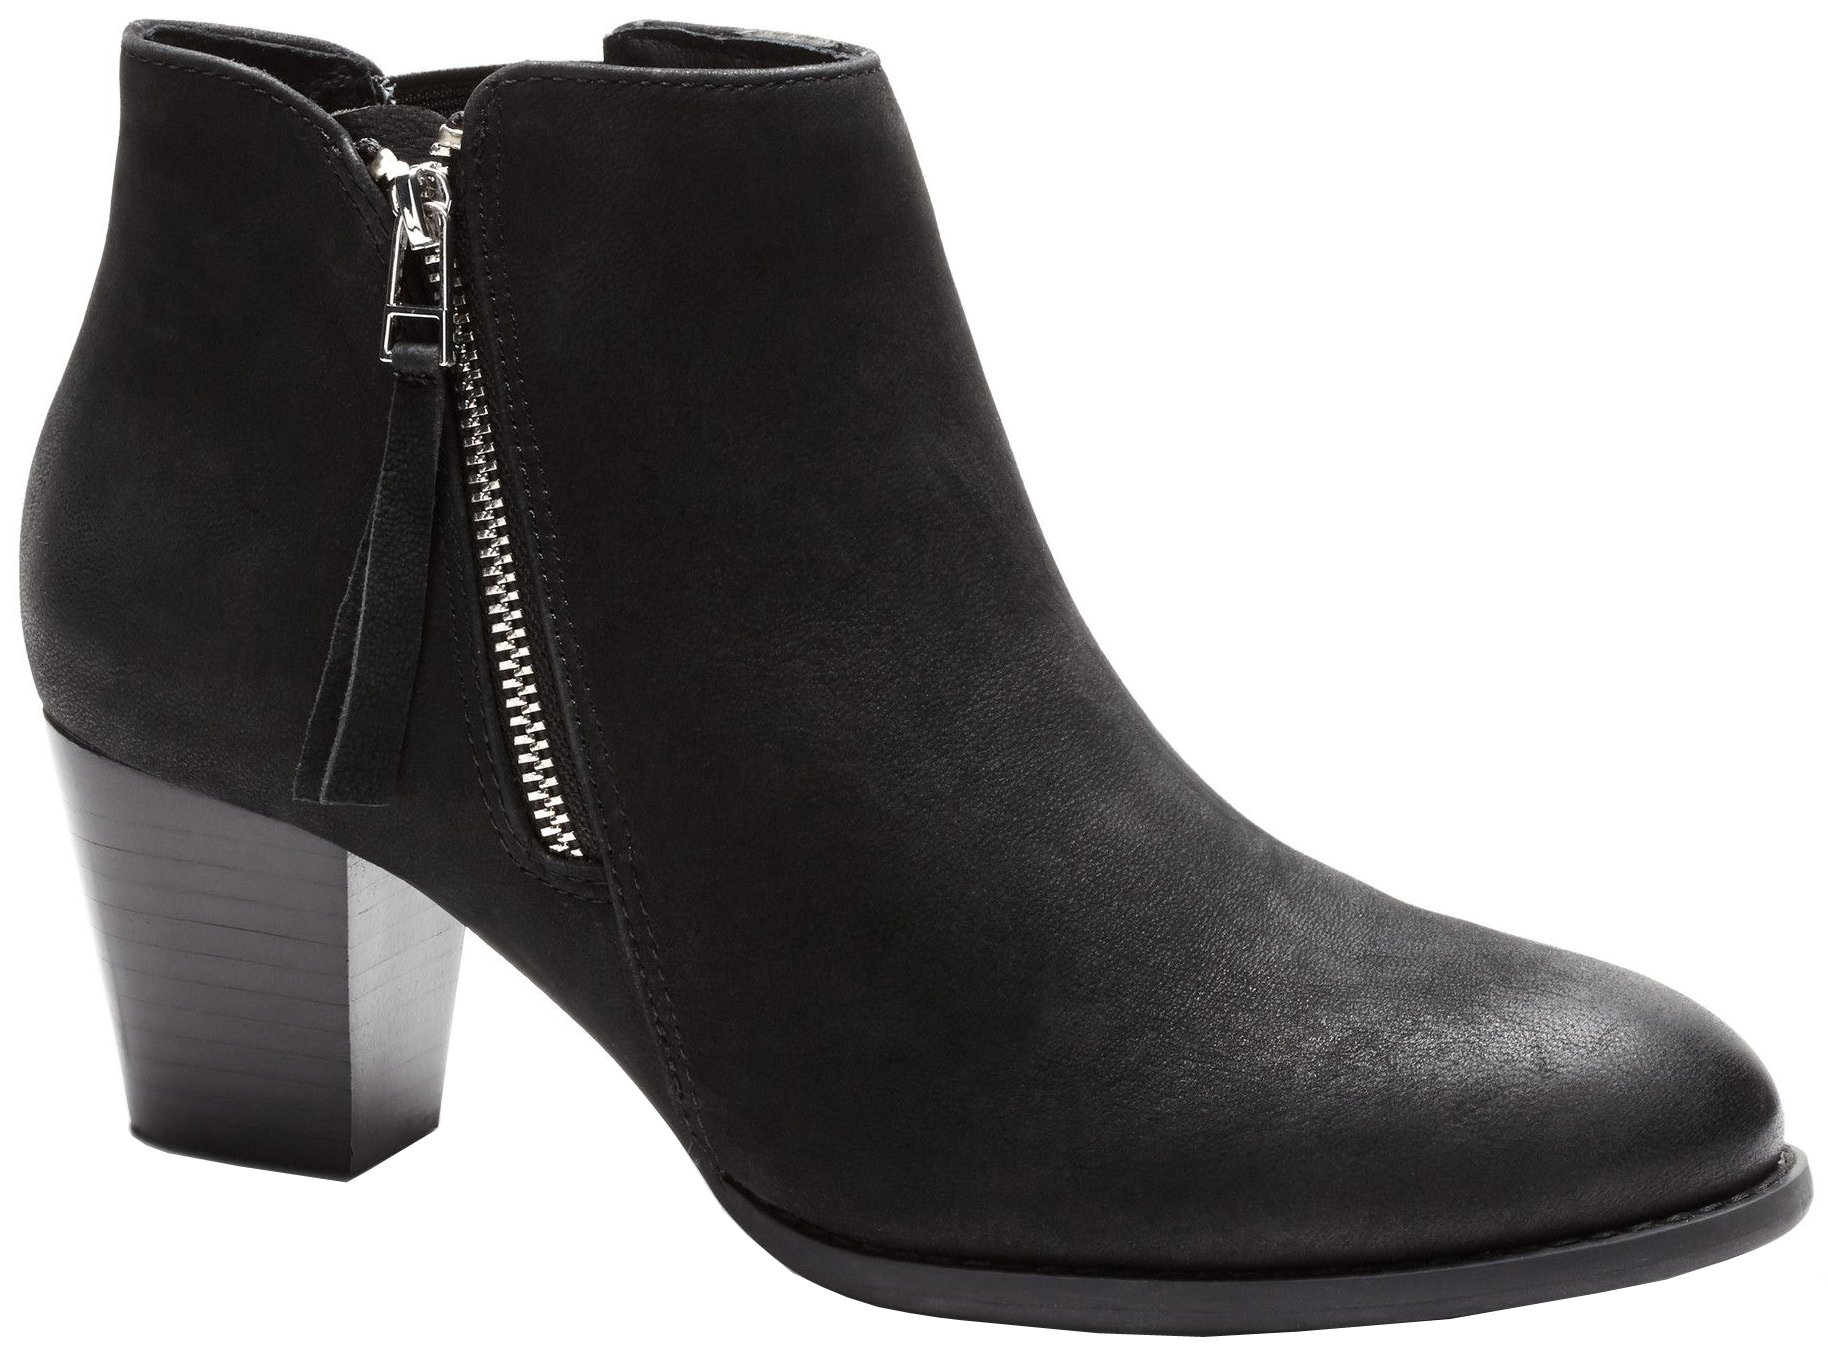 VIONIC Women's Upright Sterling Ankle Boot Black Boot, 11 B(M)